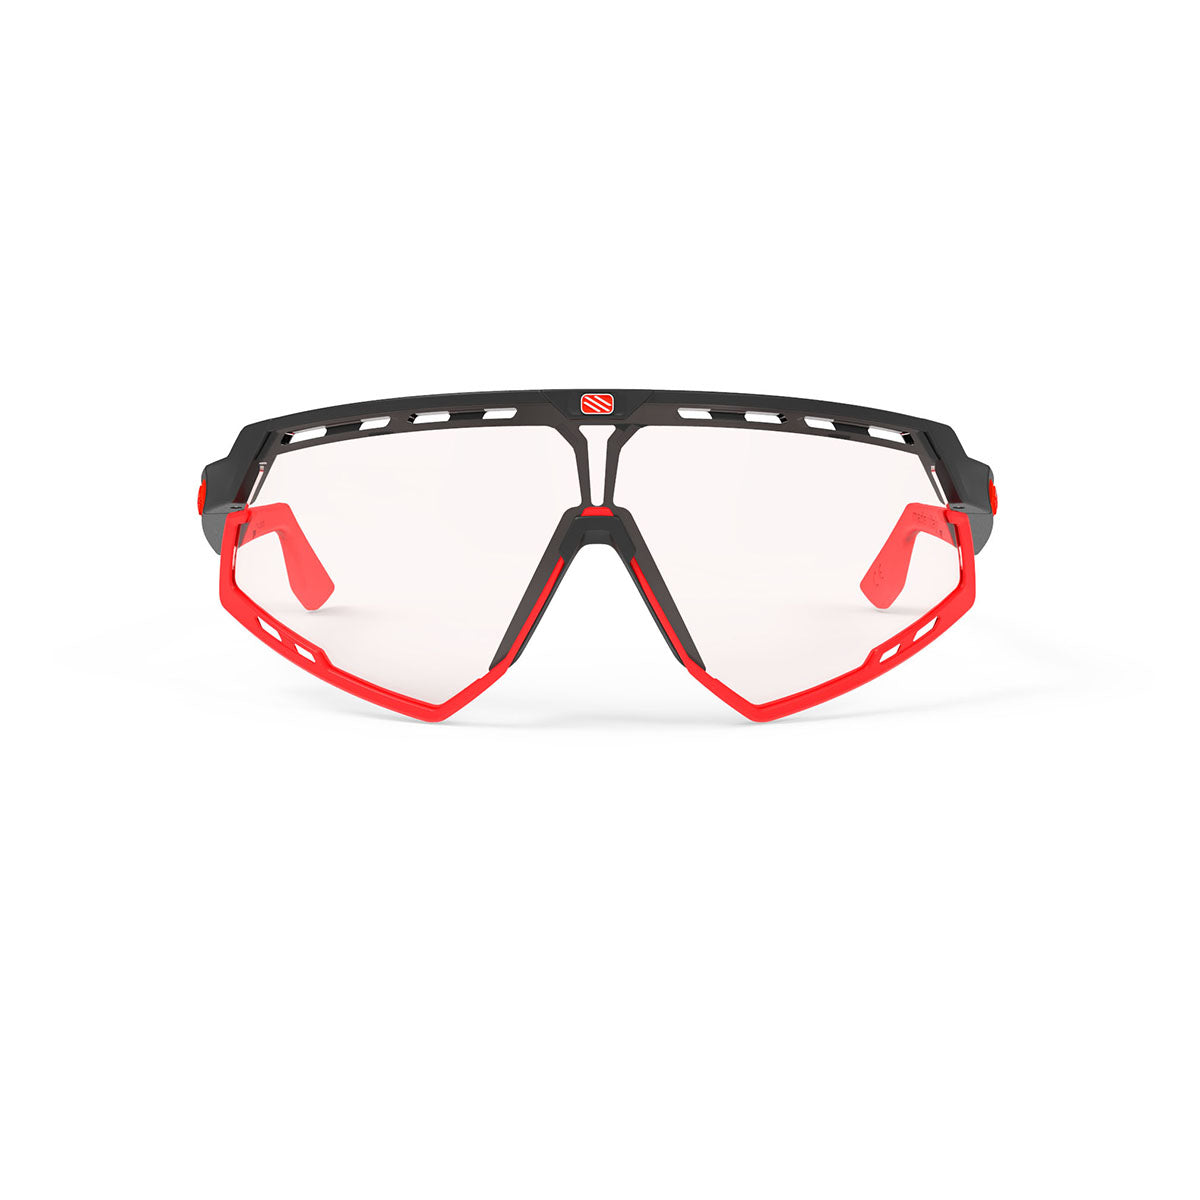 Rudy Project - Defender - frame color: Matte Black - lens color: ImpactX-2 Photochromic Clear to Red - Bumper Color: Red - photo angle: Front View Variant Hover Image